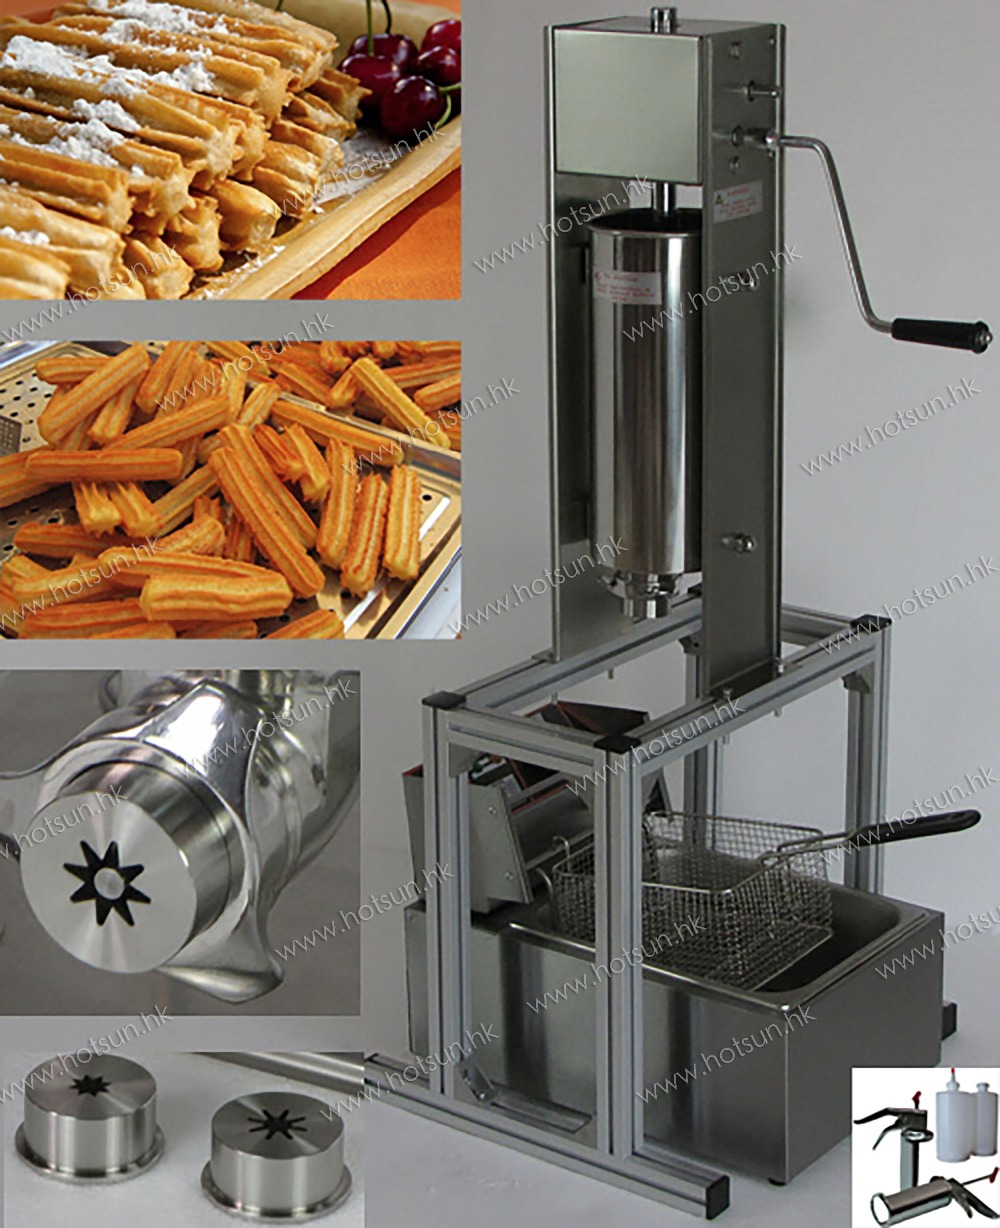 3 in 1 5L Manual Spainish Churros Machine Maker with Support + 6L 110v 220v Electric Deep Fryer + 700ml Churro Jam Filler commercial deluxe stainless steel 3l churro maker 6l electric fryer manual spanish churros making machine capacity 3l